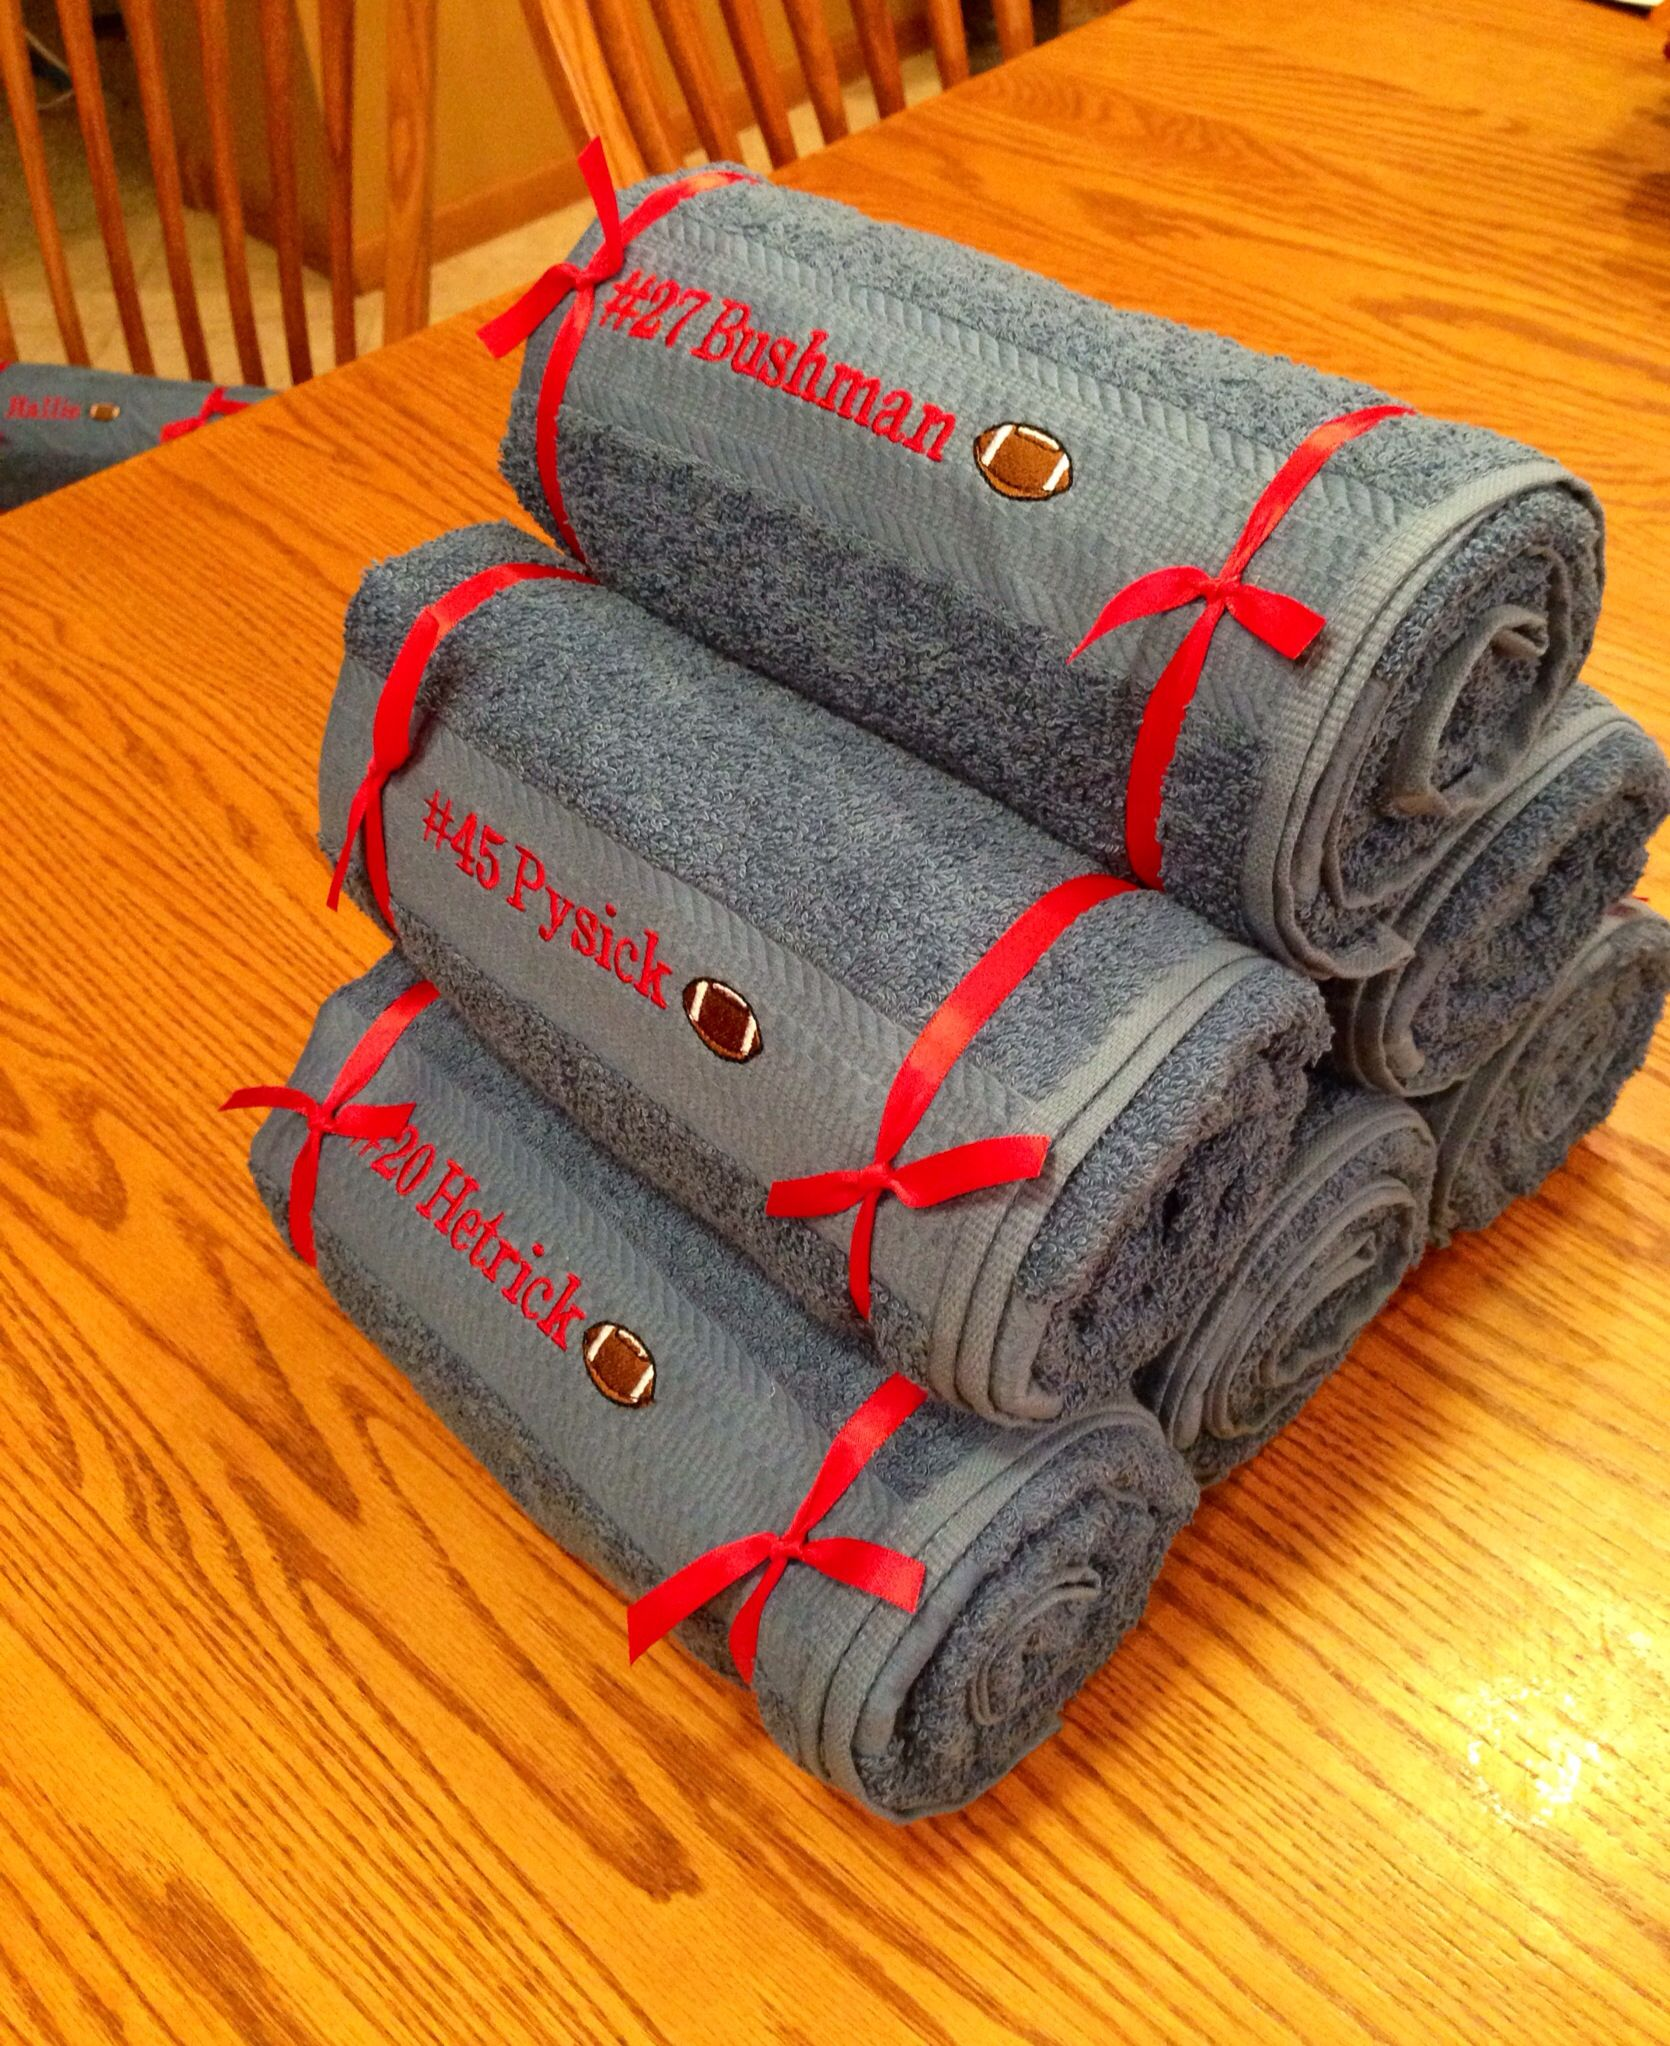 Senior Football Gifts Embroidered Bath Towels Cost Under